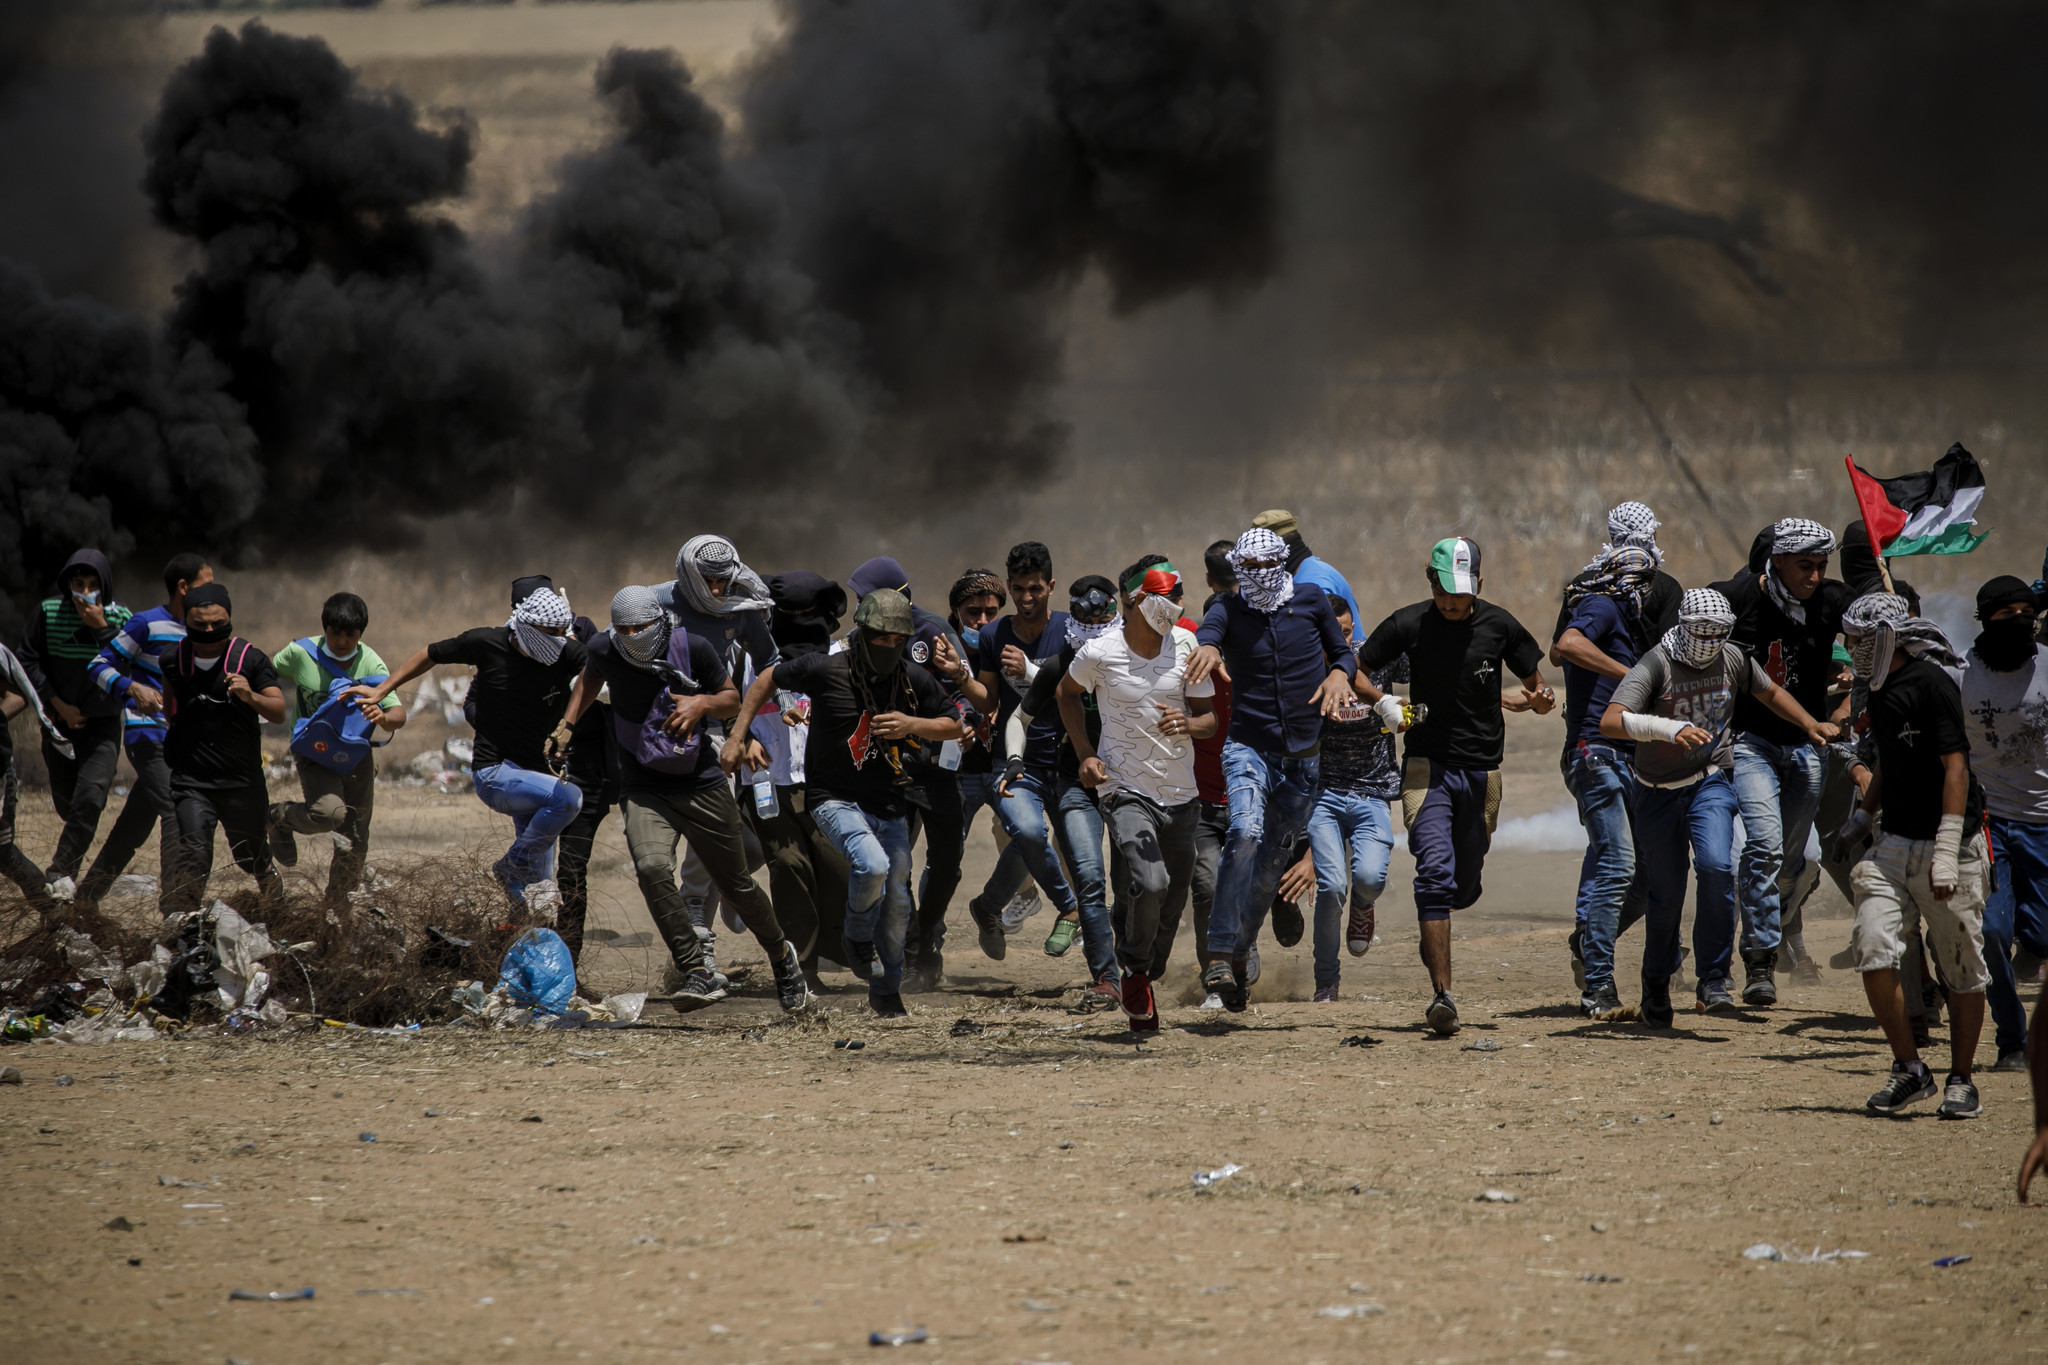 KHAN YOUNIS, GAZA STRIP — FRIDAY, MAY 11, 2018: Palestinian protesters run away from tear gas duri